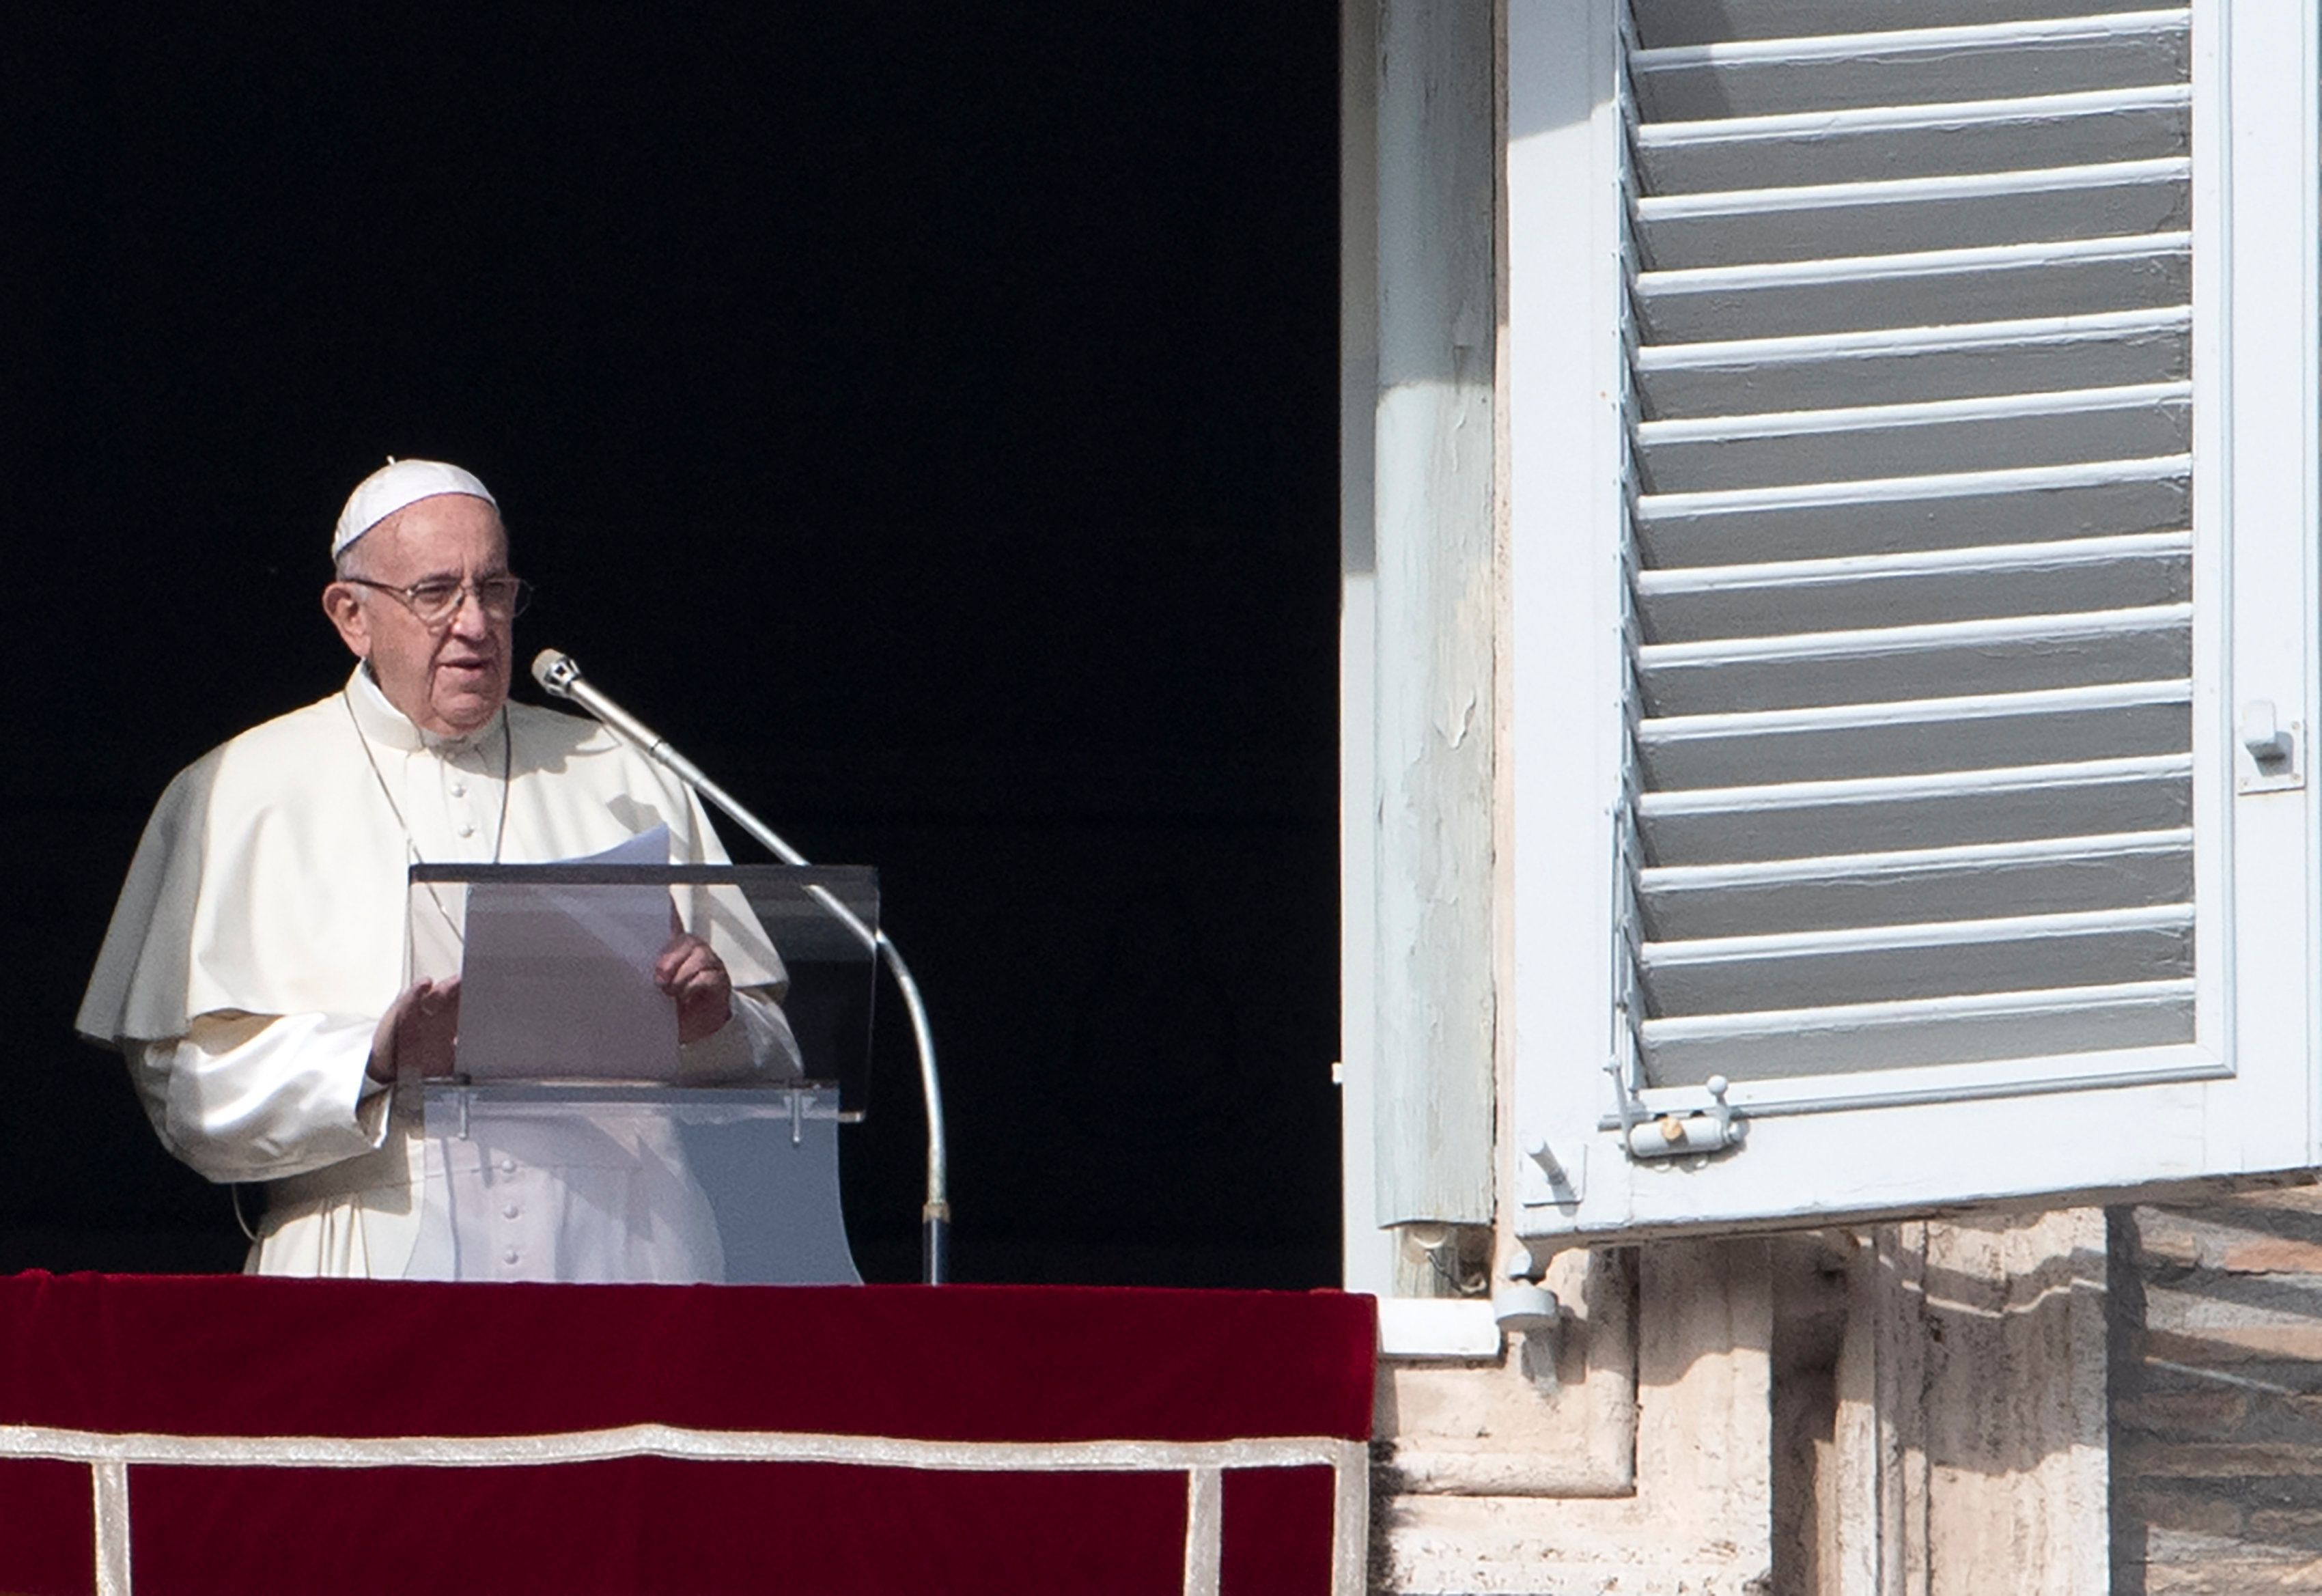 Pope Francis addresses the crowd from the window of the apostolic palace overlooking Saint Peter's square during his Sunday Angelus prayer on December 2, 2018. (Photo by Tiziana FABI / AFP)        (Photo credit should read TIZIANA FABI/AFP/Getty Images)